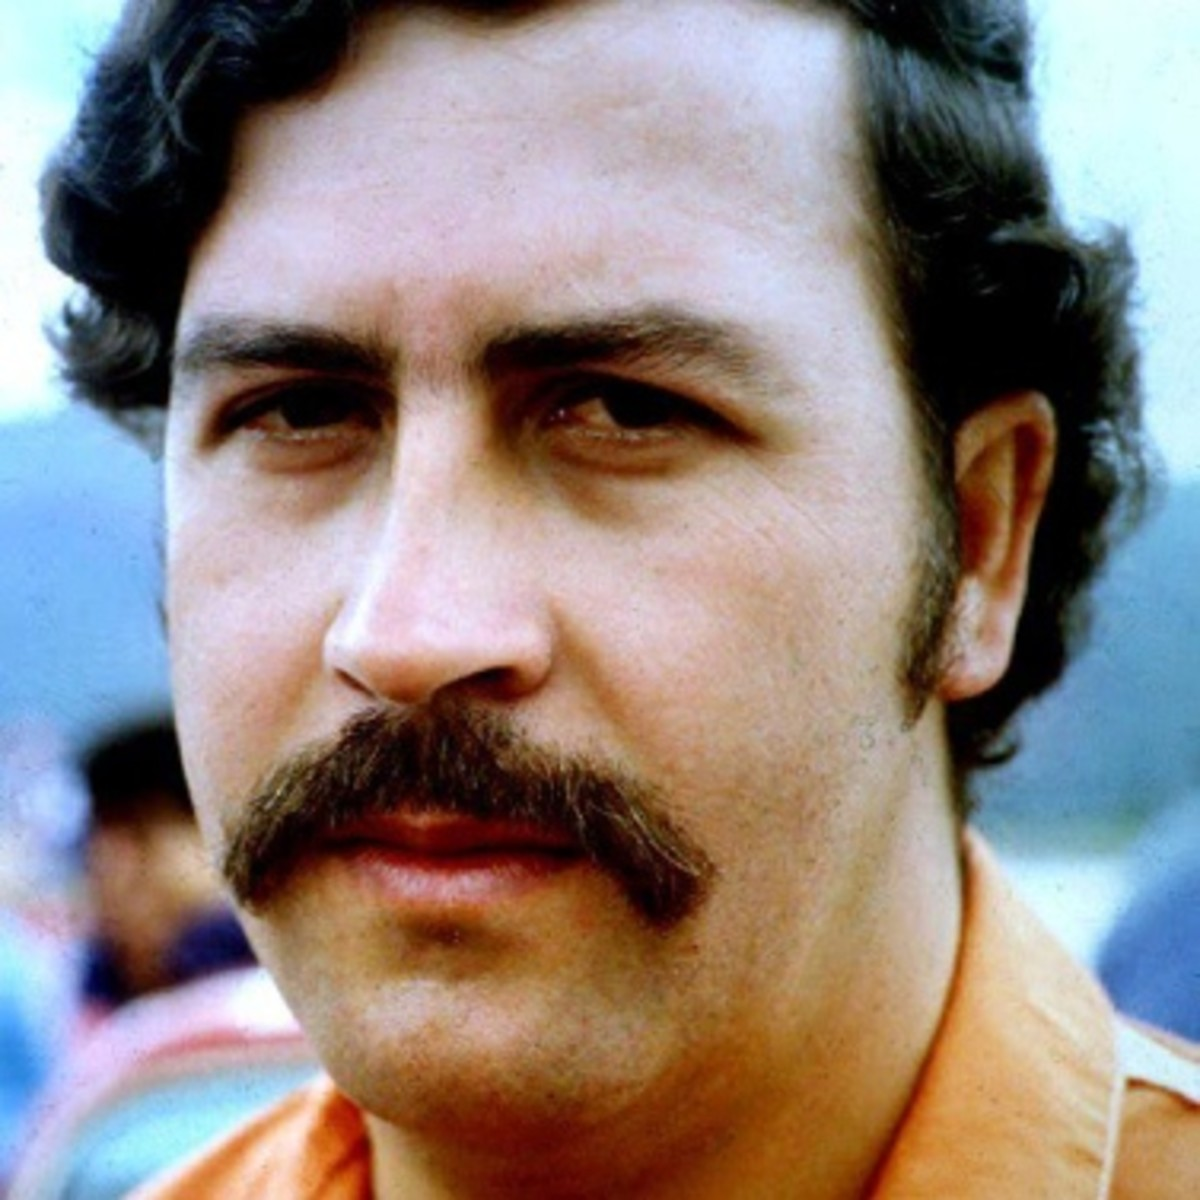 The Little-known Story Of Maria Victoria Henao, Pablo Escobar's Wife